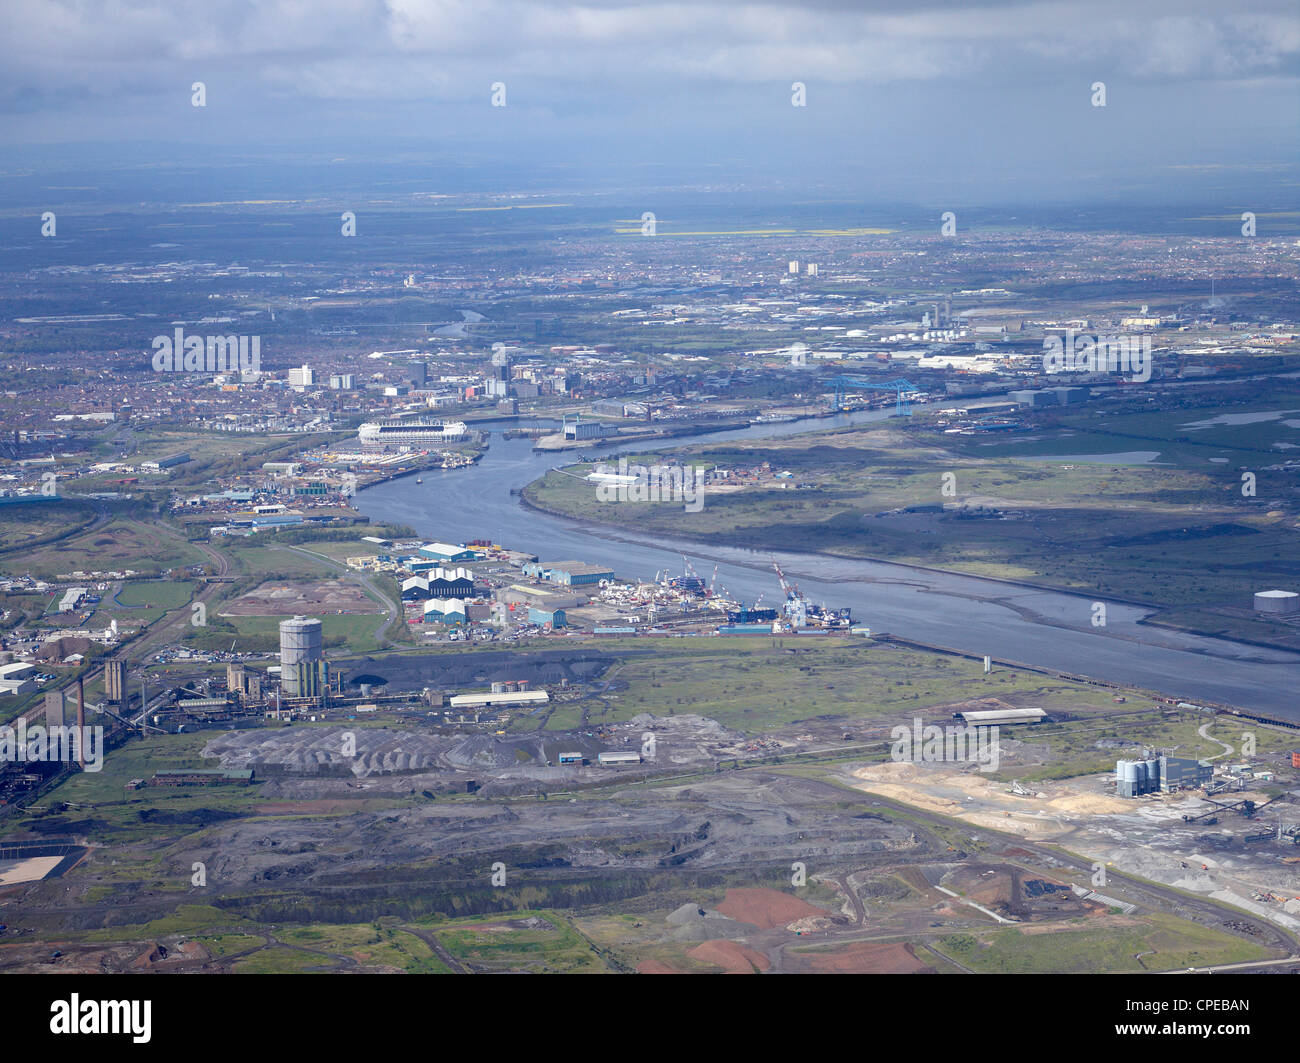 Teeside from the Air, North East England, May 2012 - Stock Image